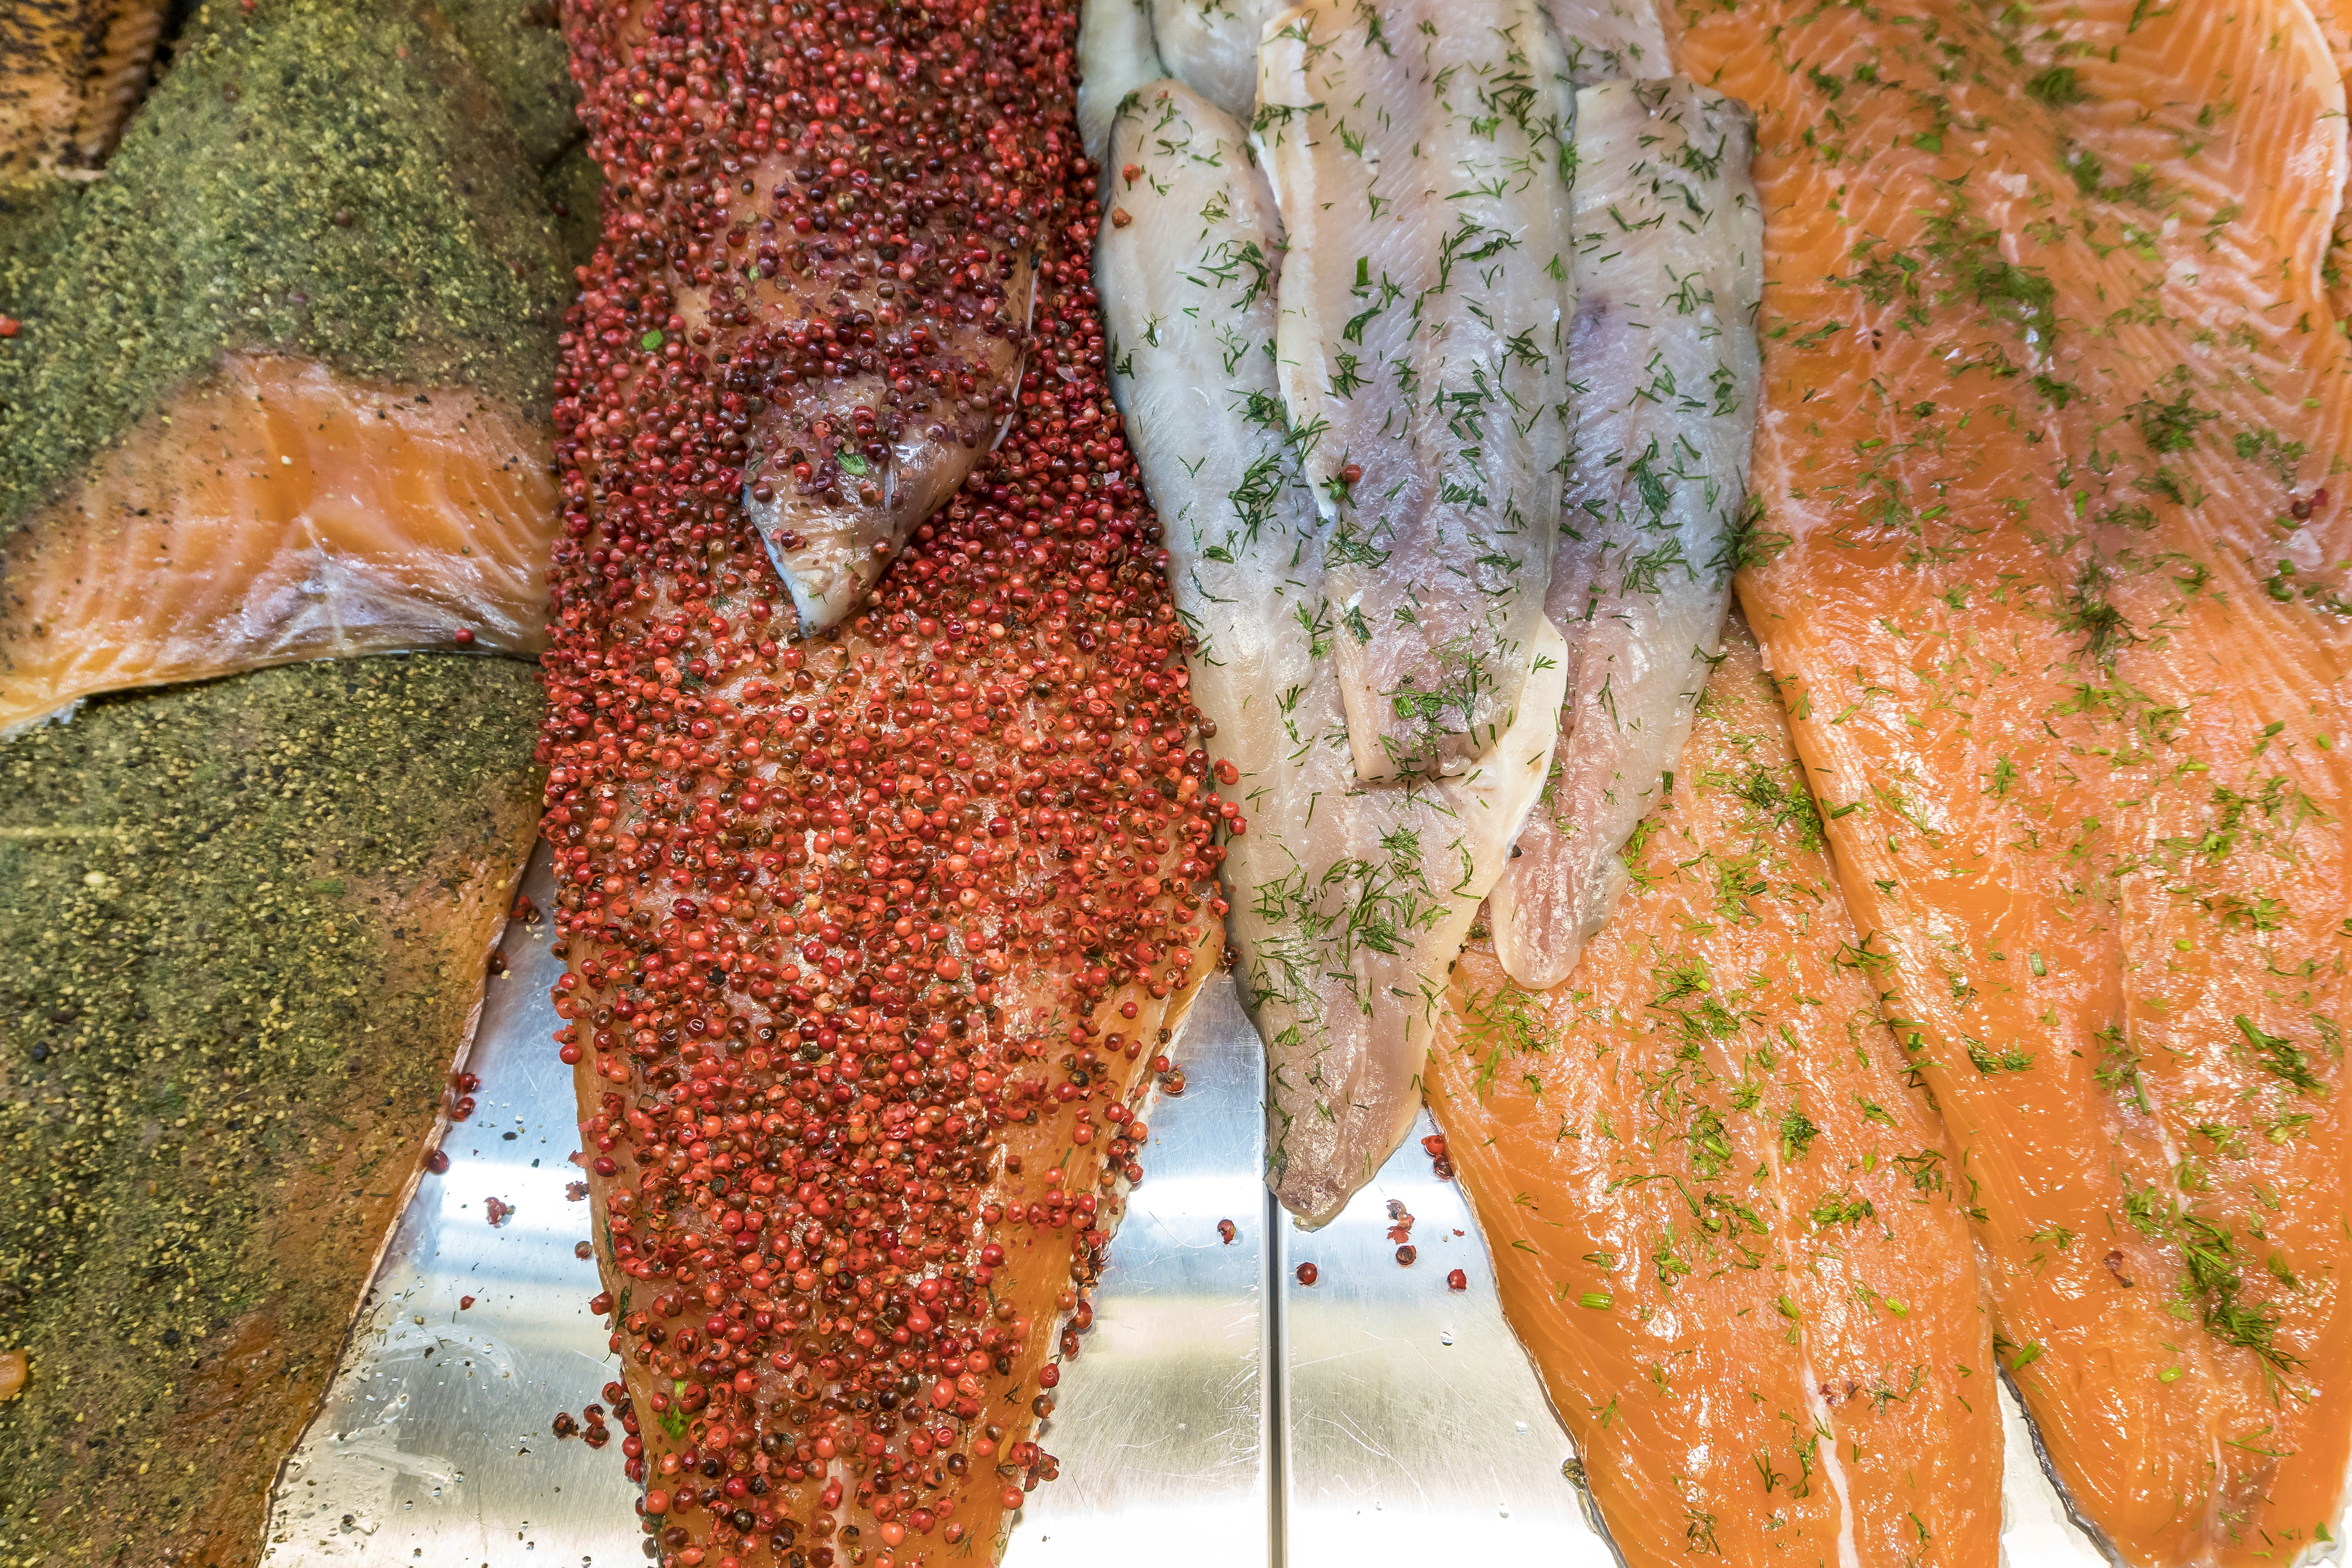 Several fillets of fish have been coated with different colorful herbs and spices at Vanha Kauppahalli in Helsinki.